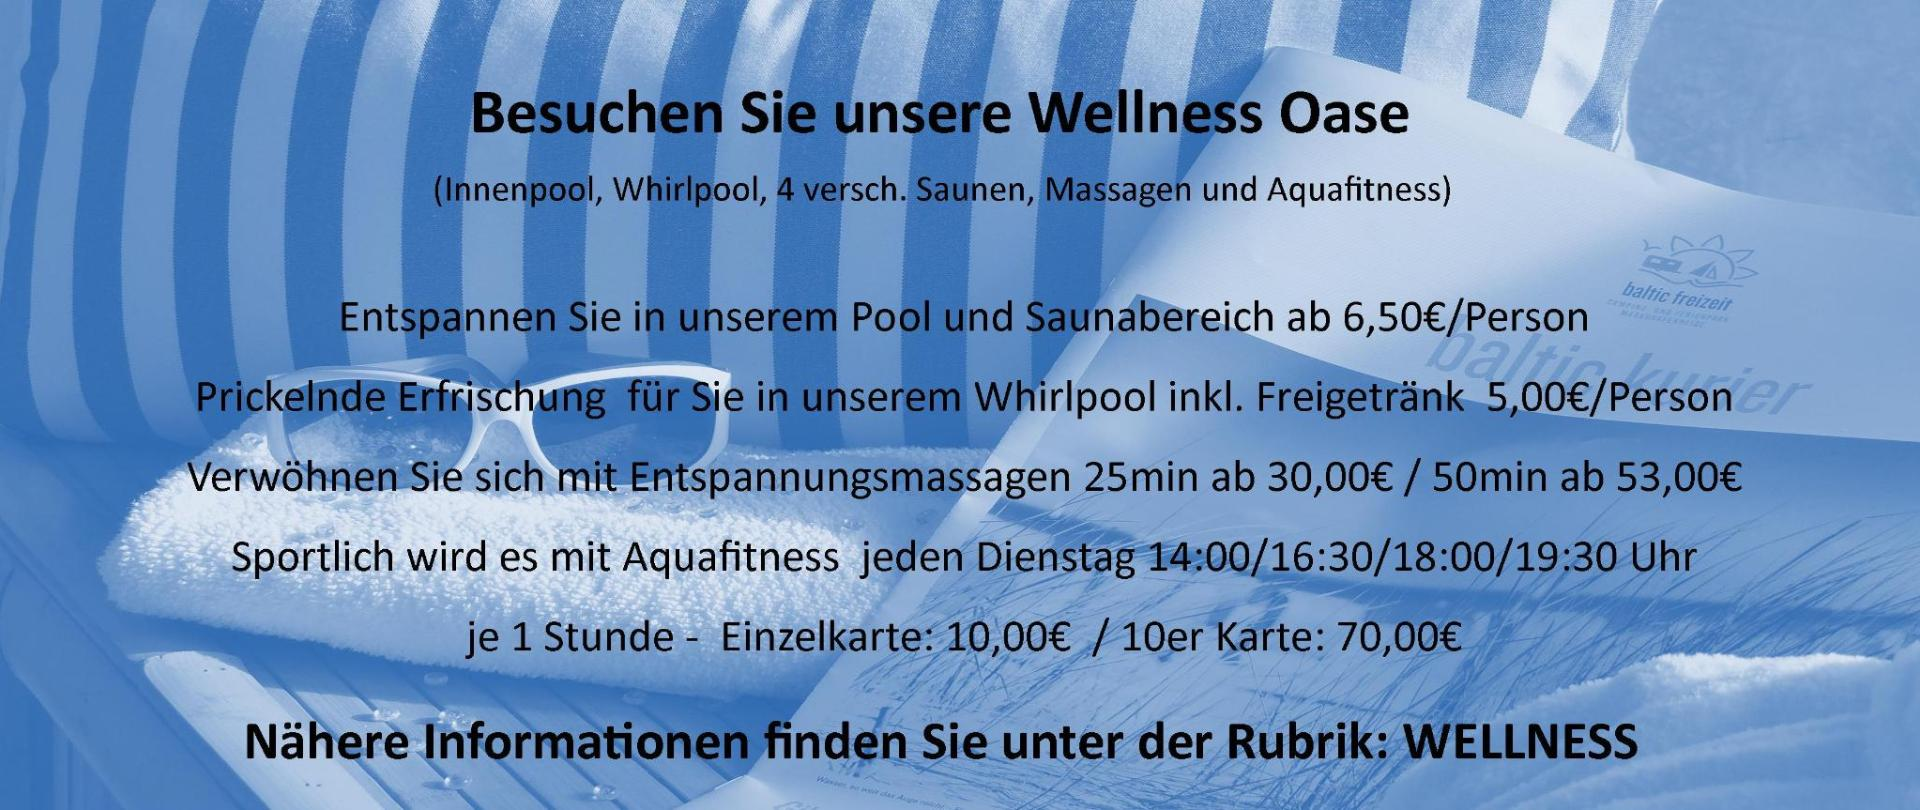 spa flyer für web.jpg